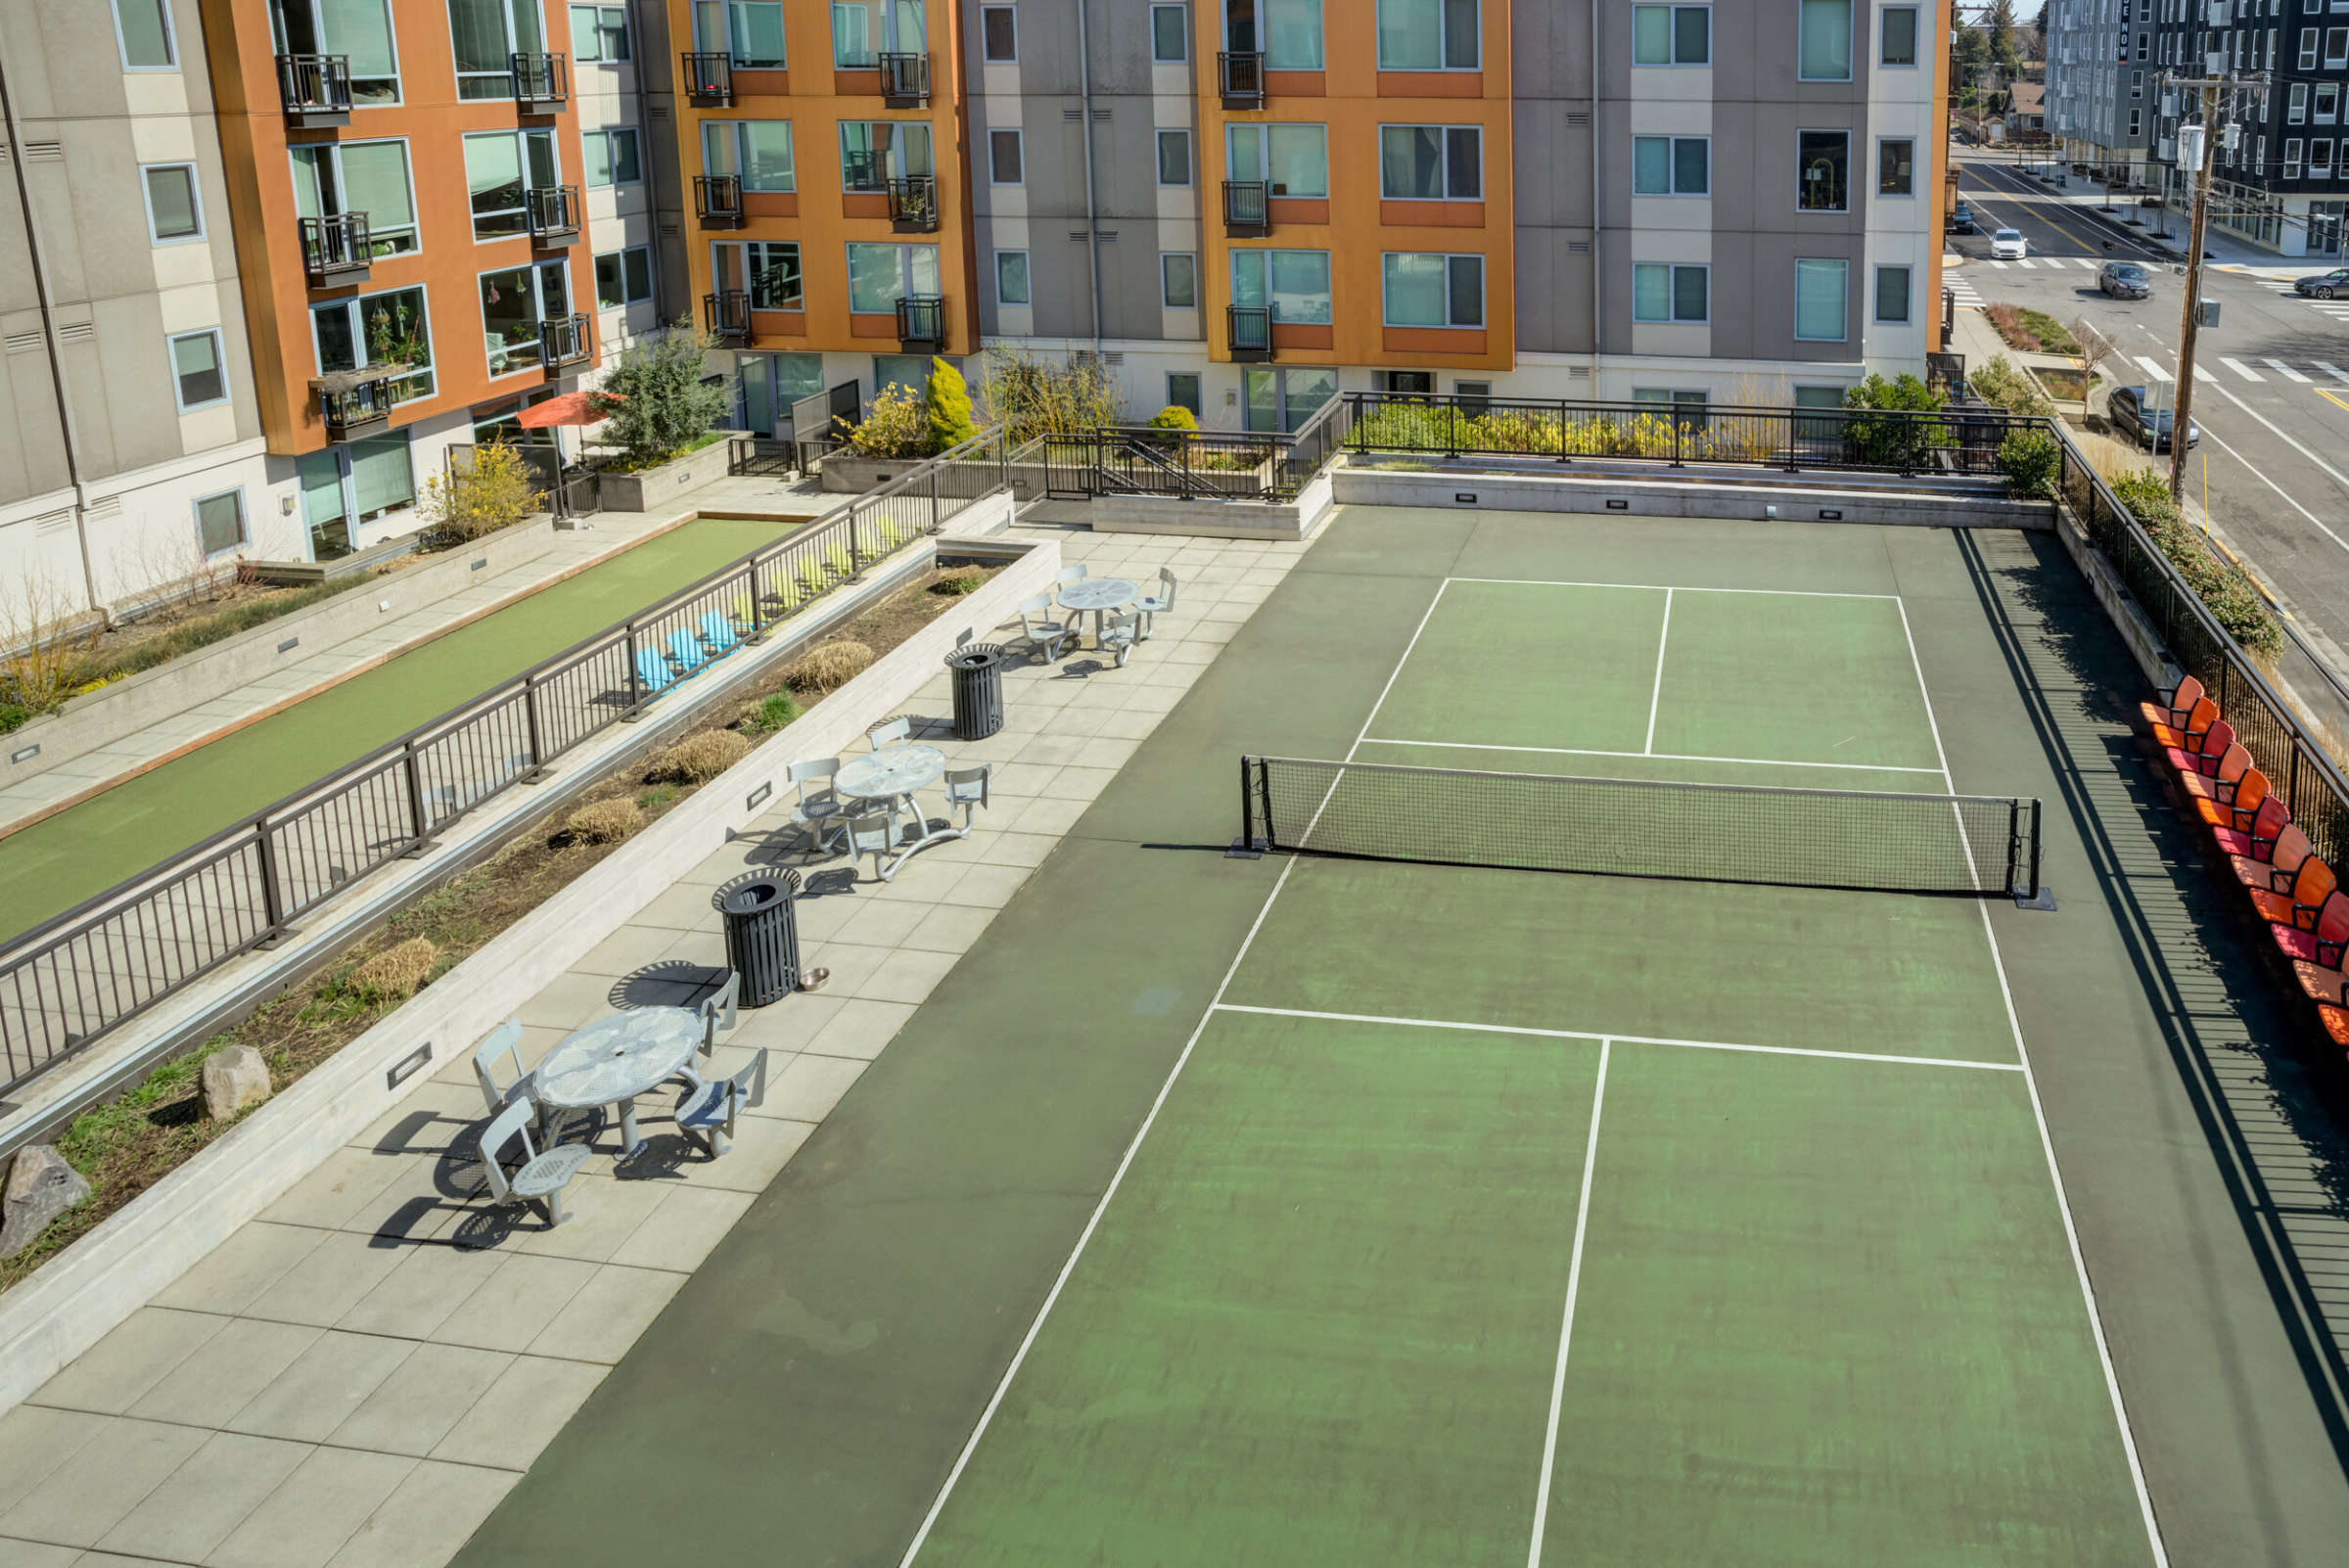 Aerial view of pickle ball court and outdoor courtyard